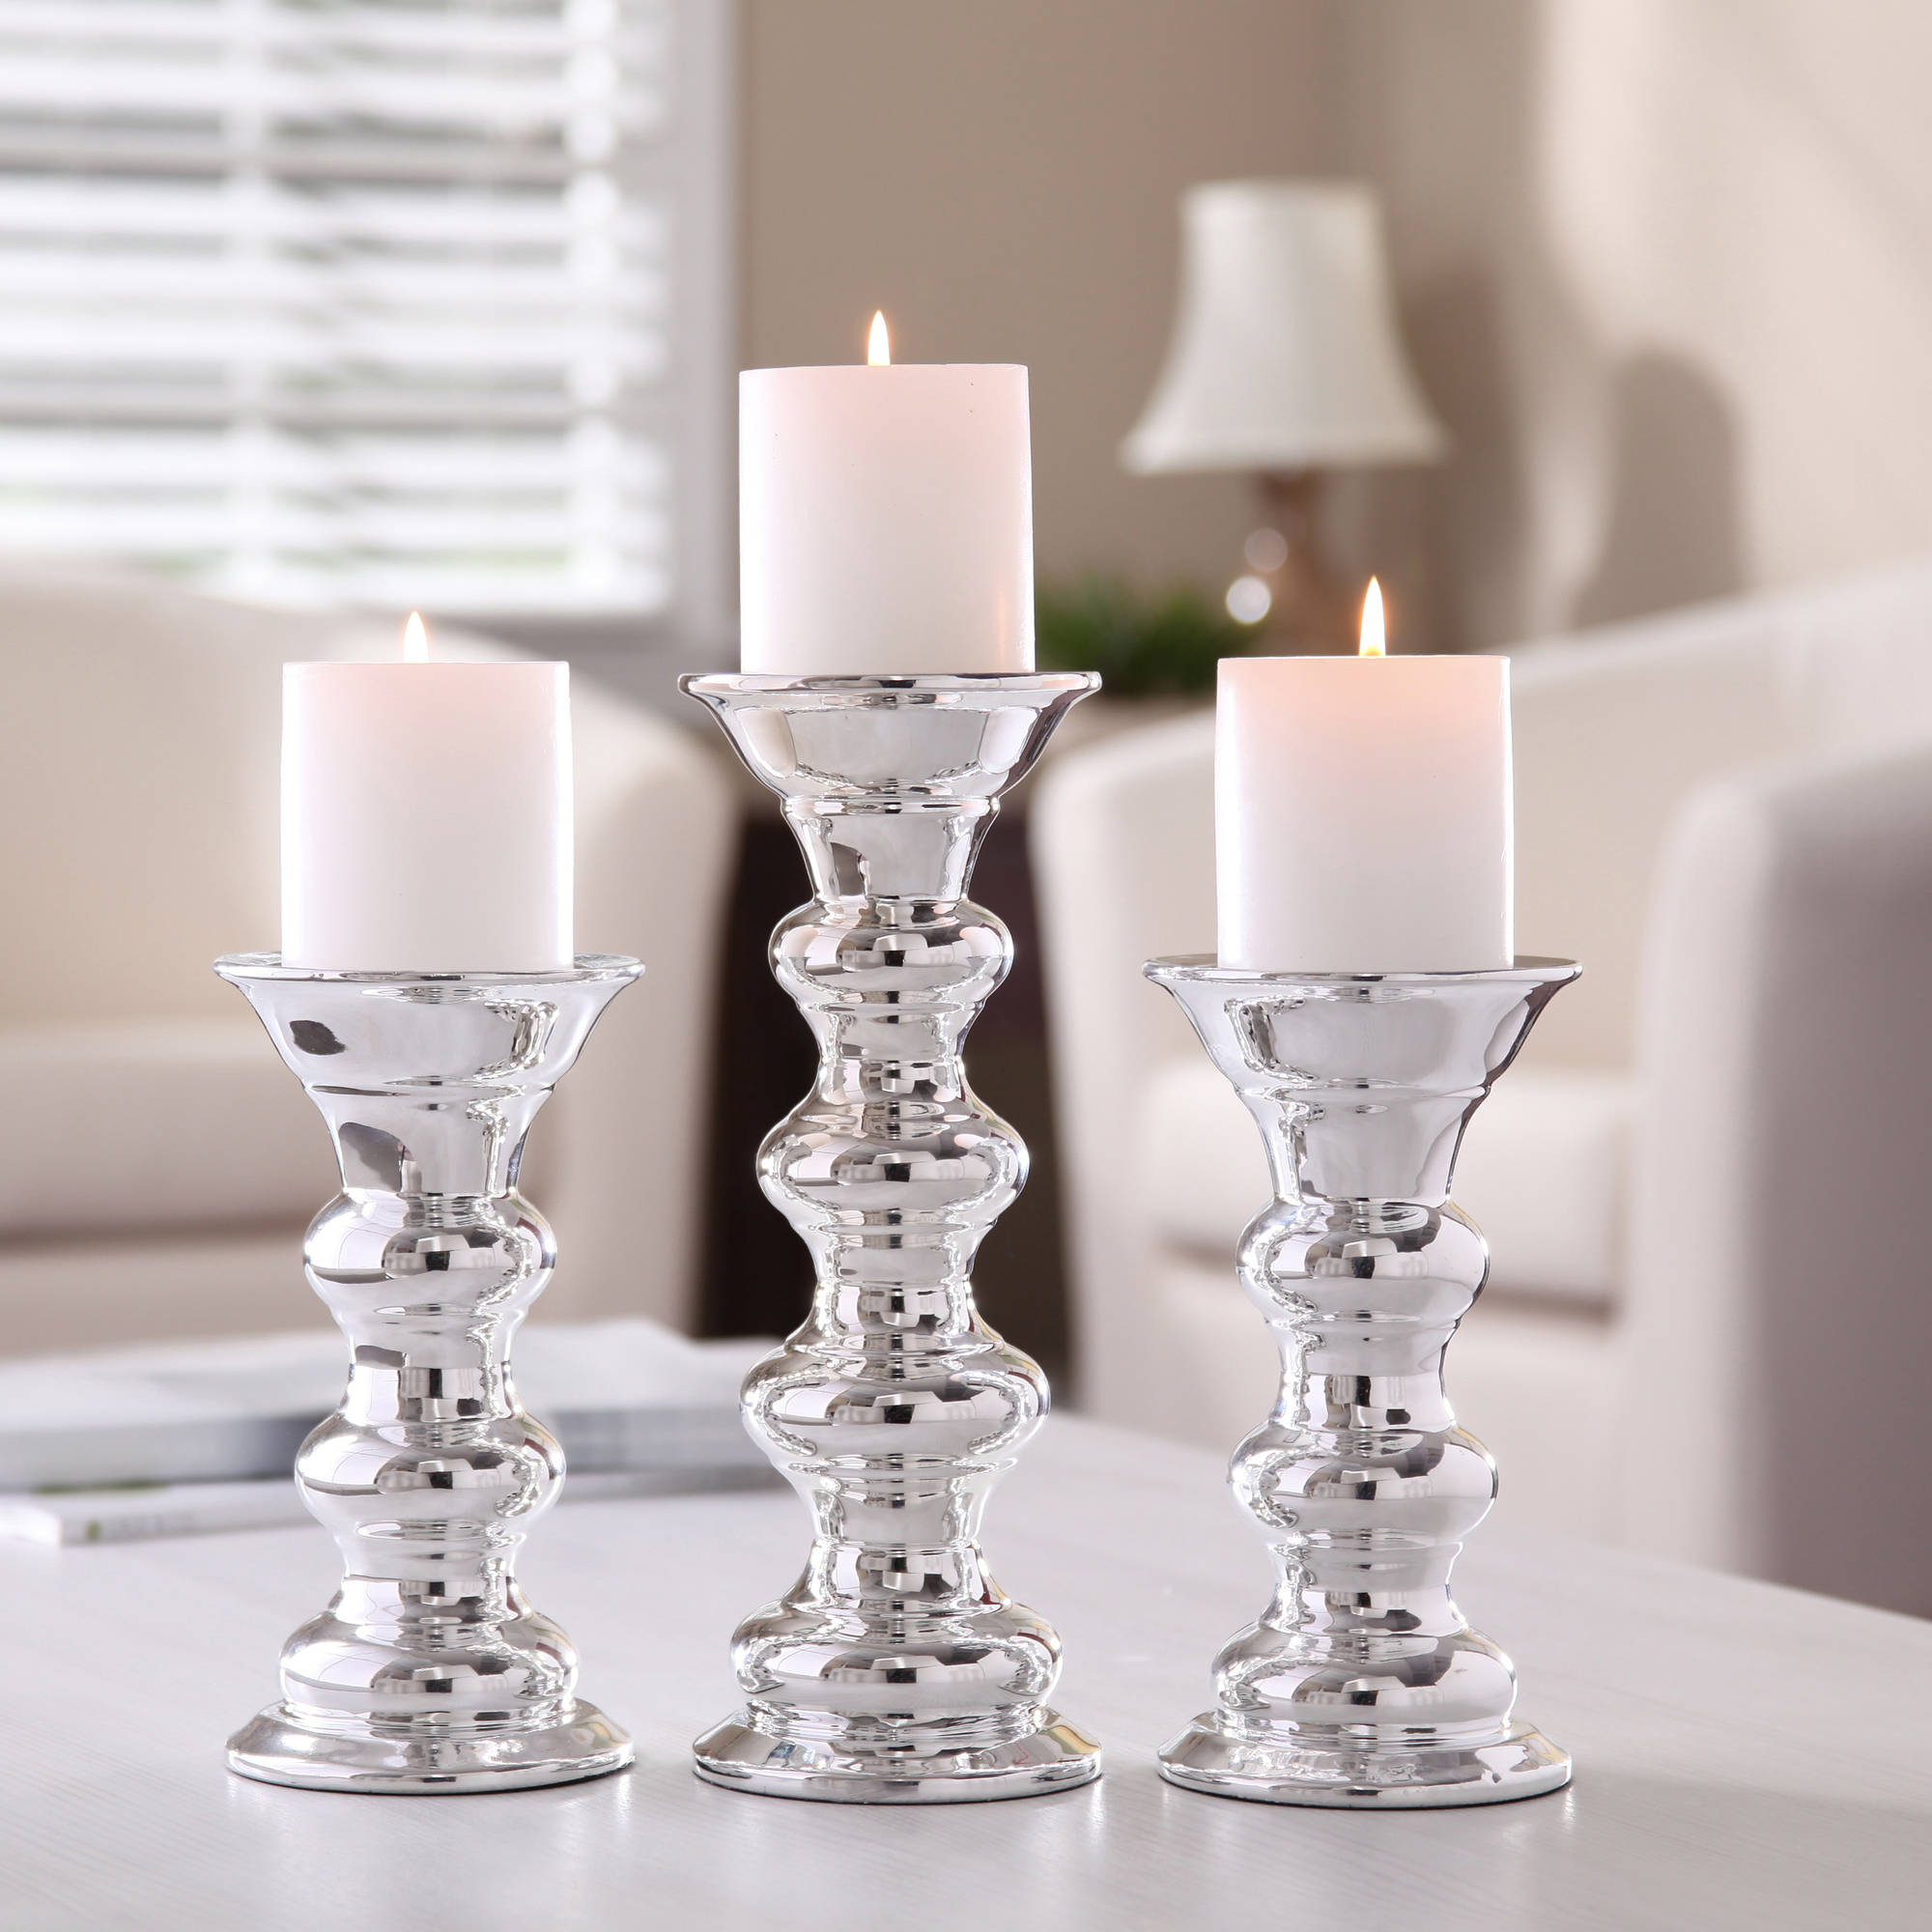 better homes and gardens ceramic metallic pillar candle holders set of 3 walmartcom - Candles Home Decor